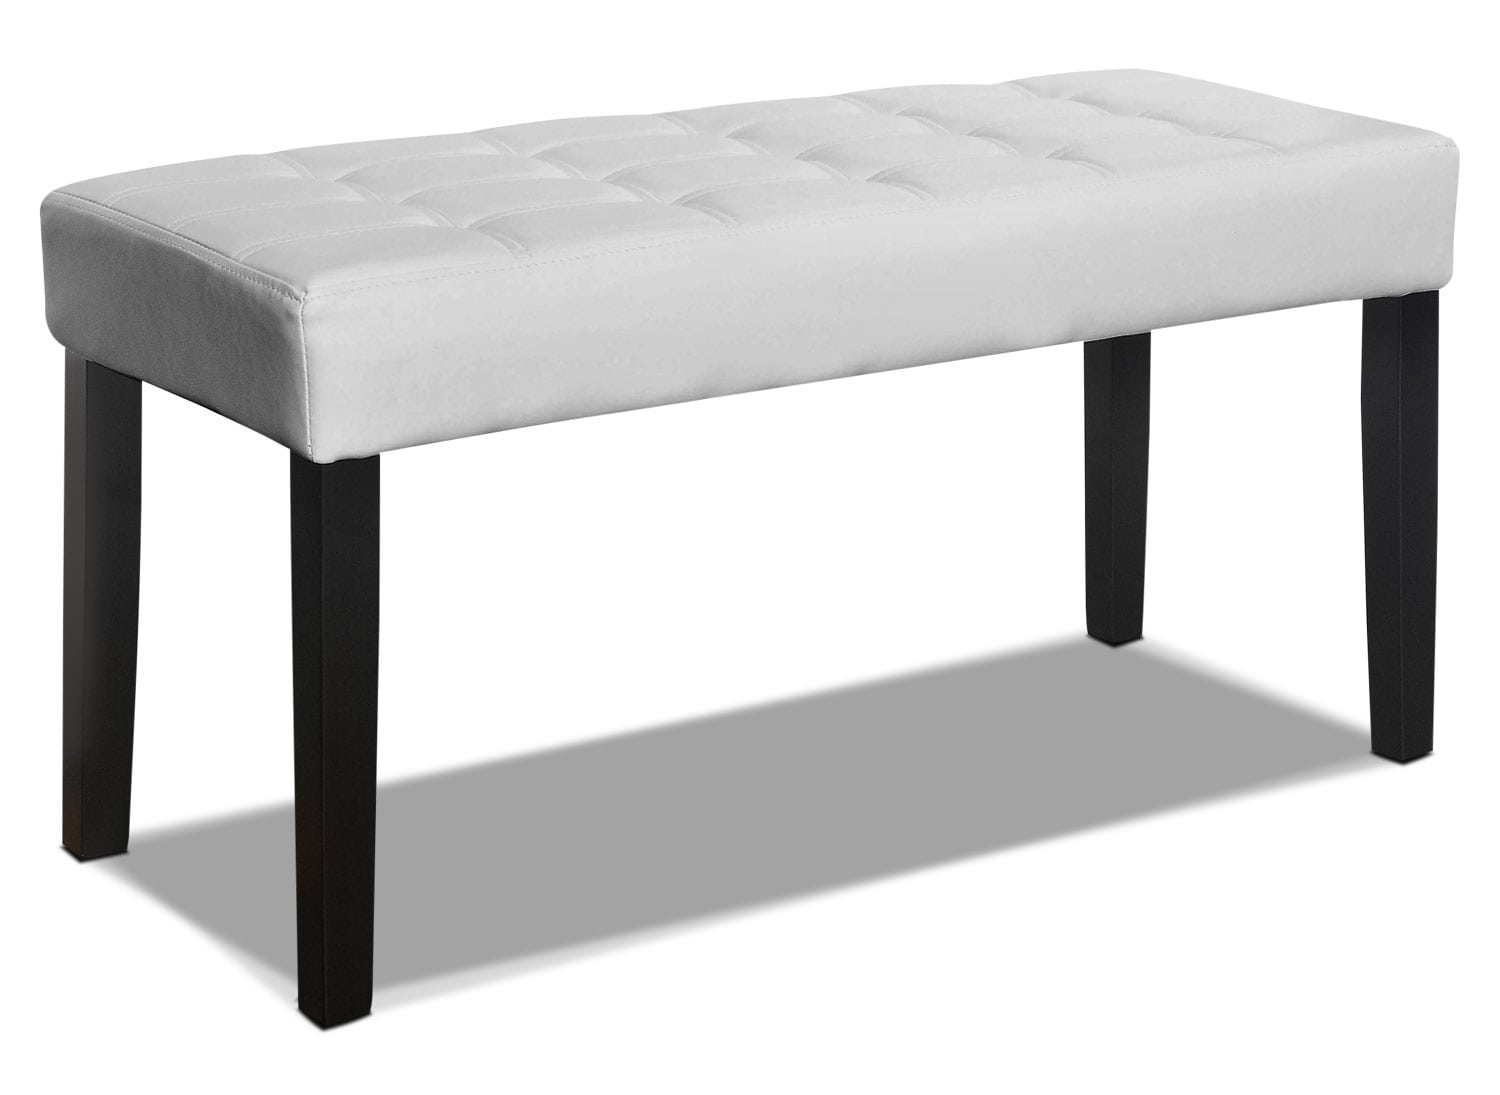 Cali Tufted Bench – White